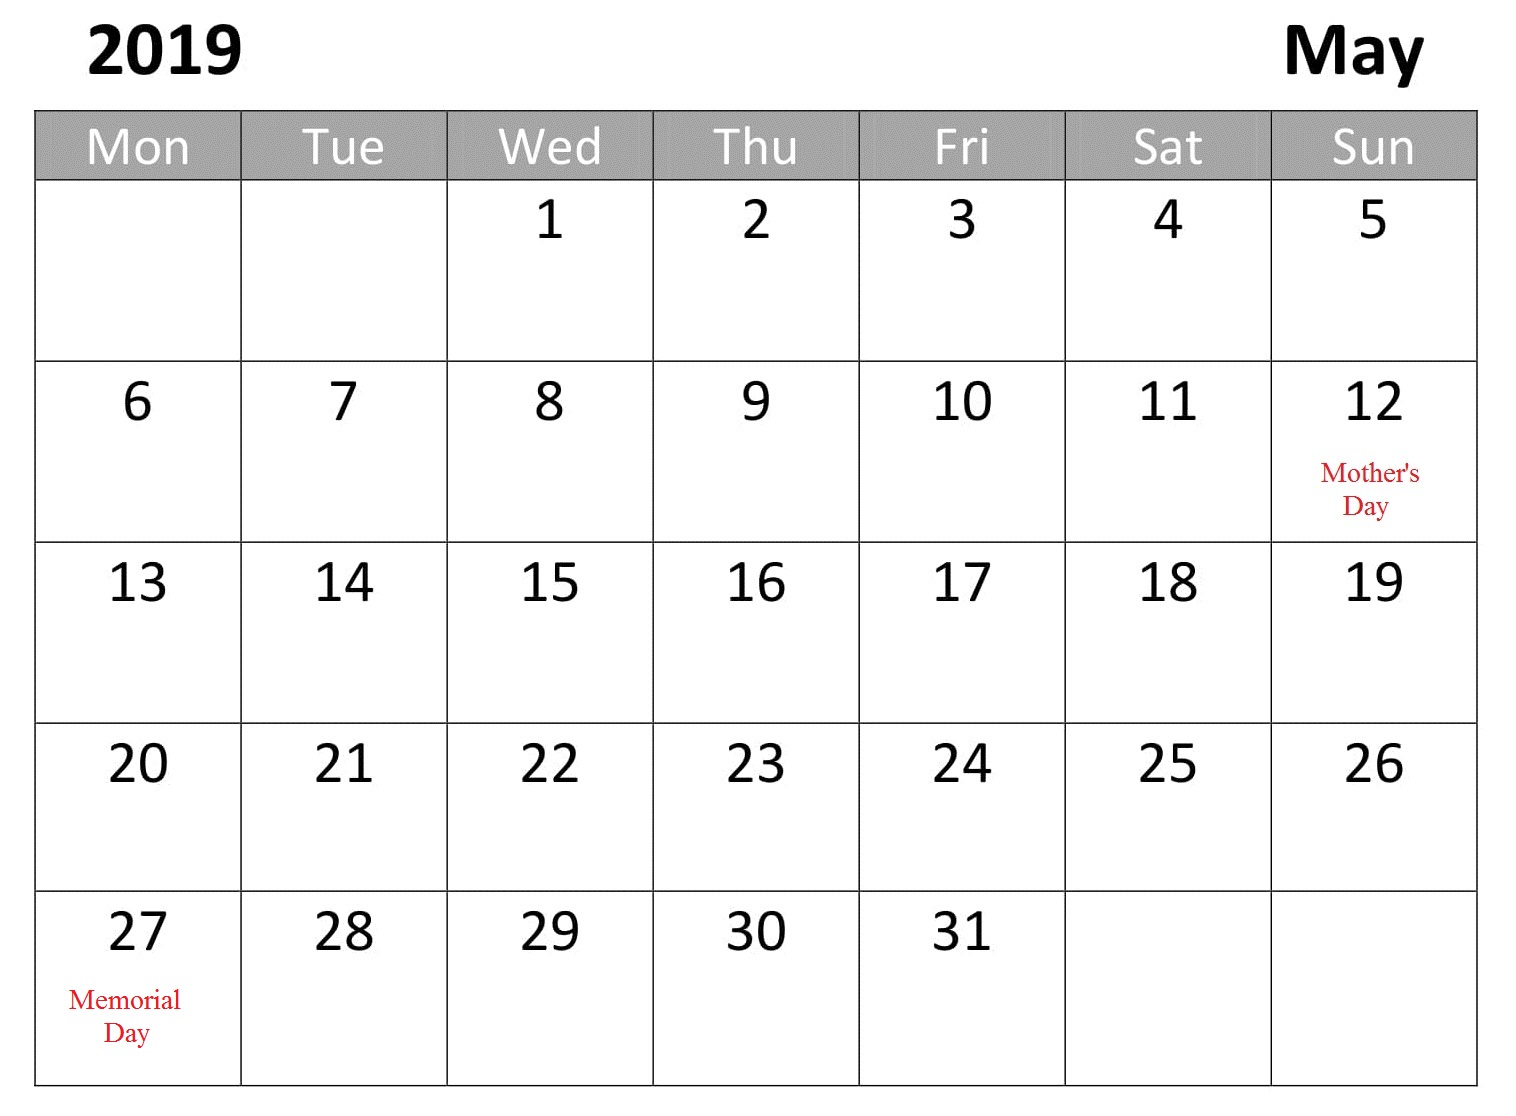 Calendar May 2019 Free With Holidays